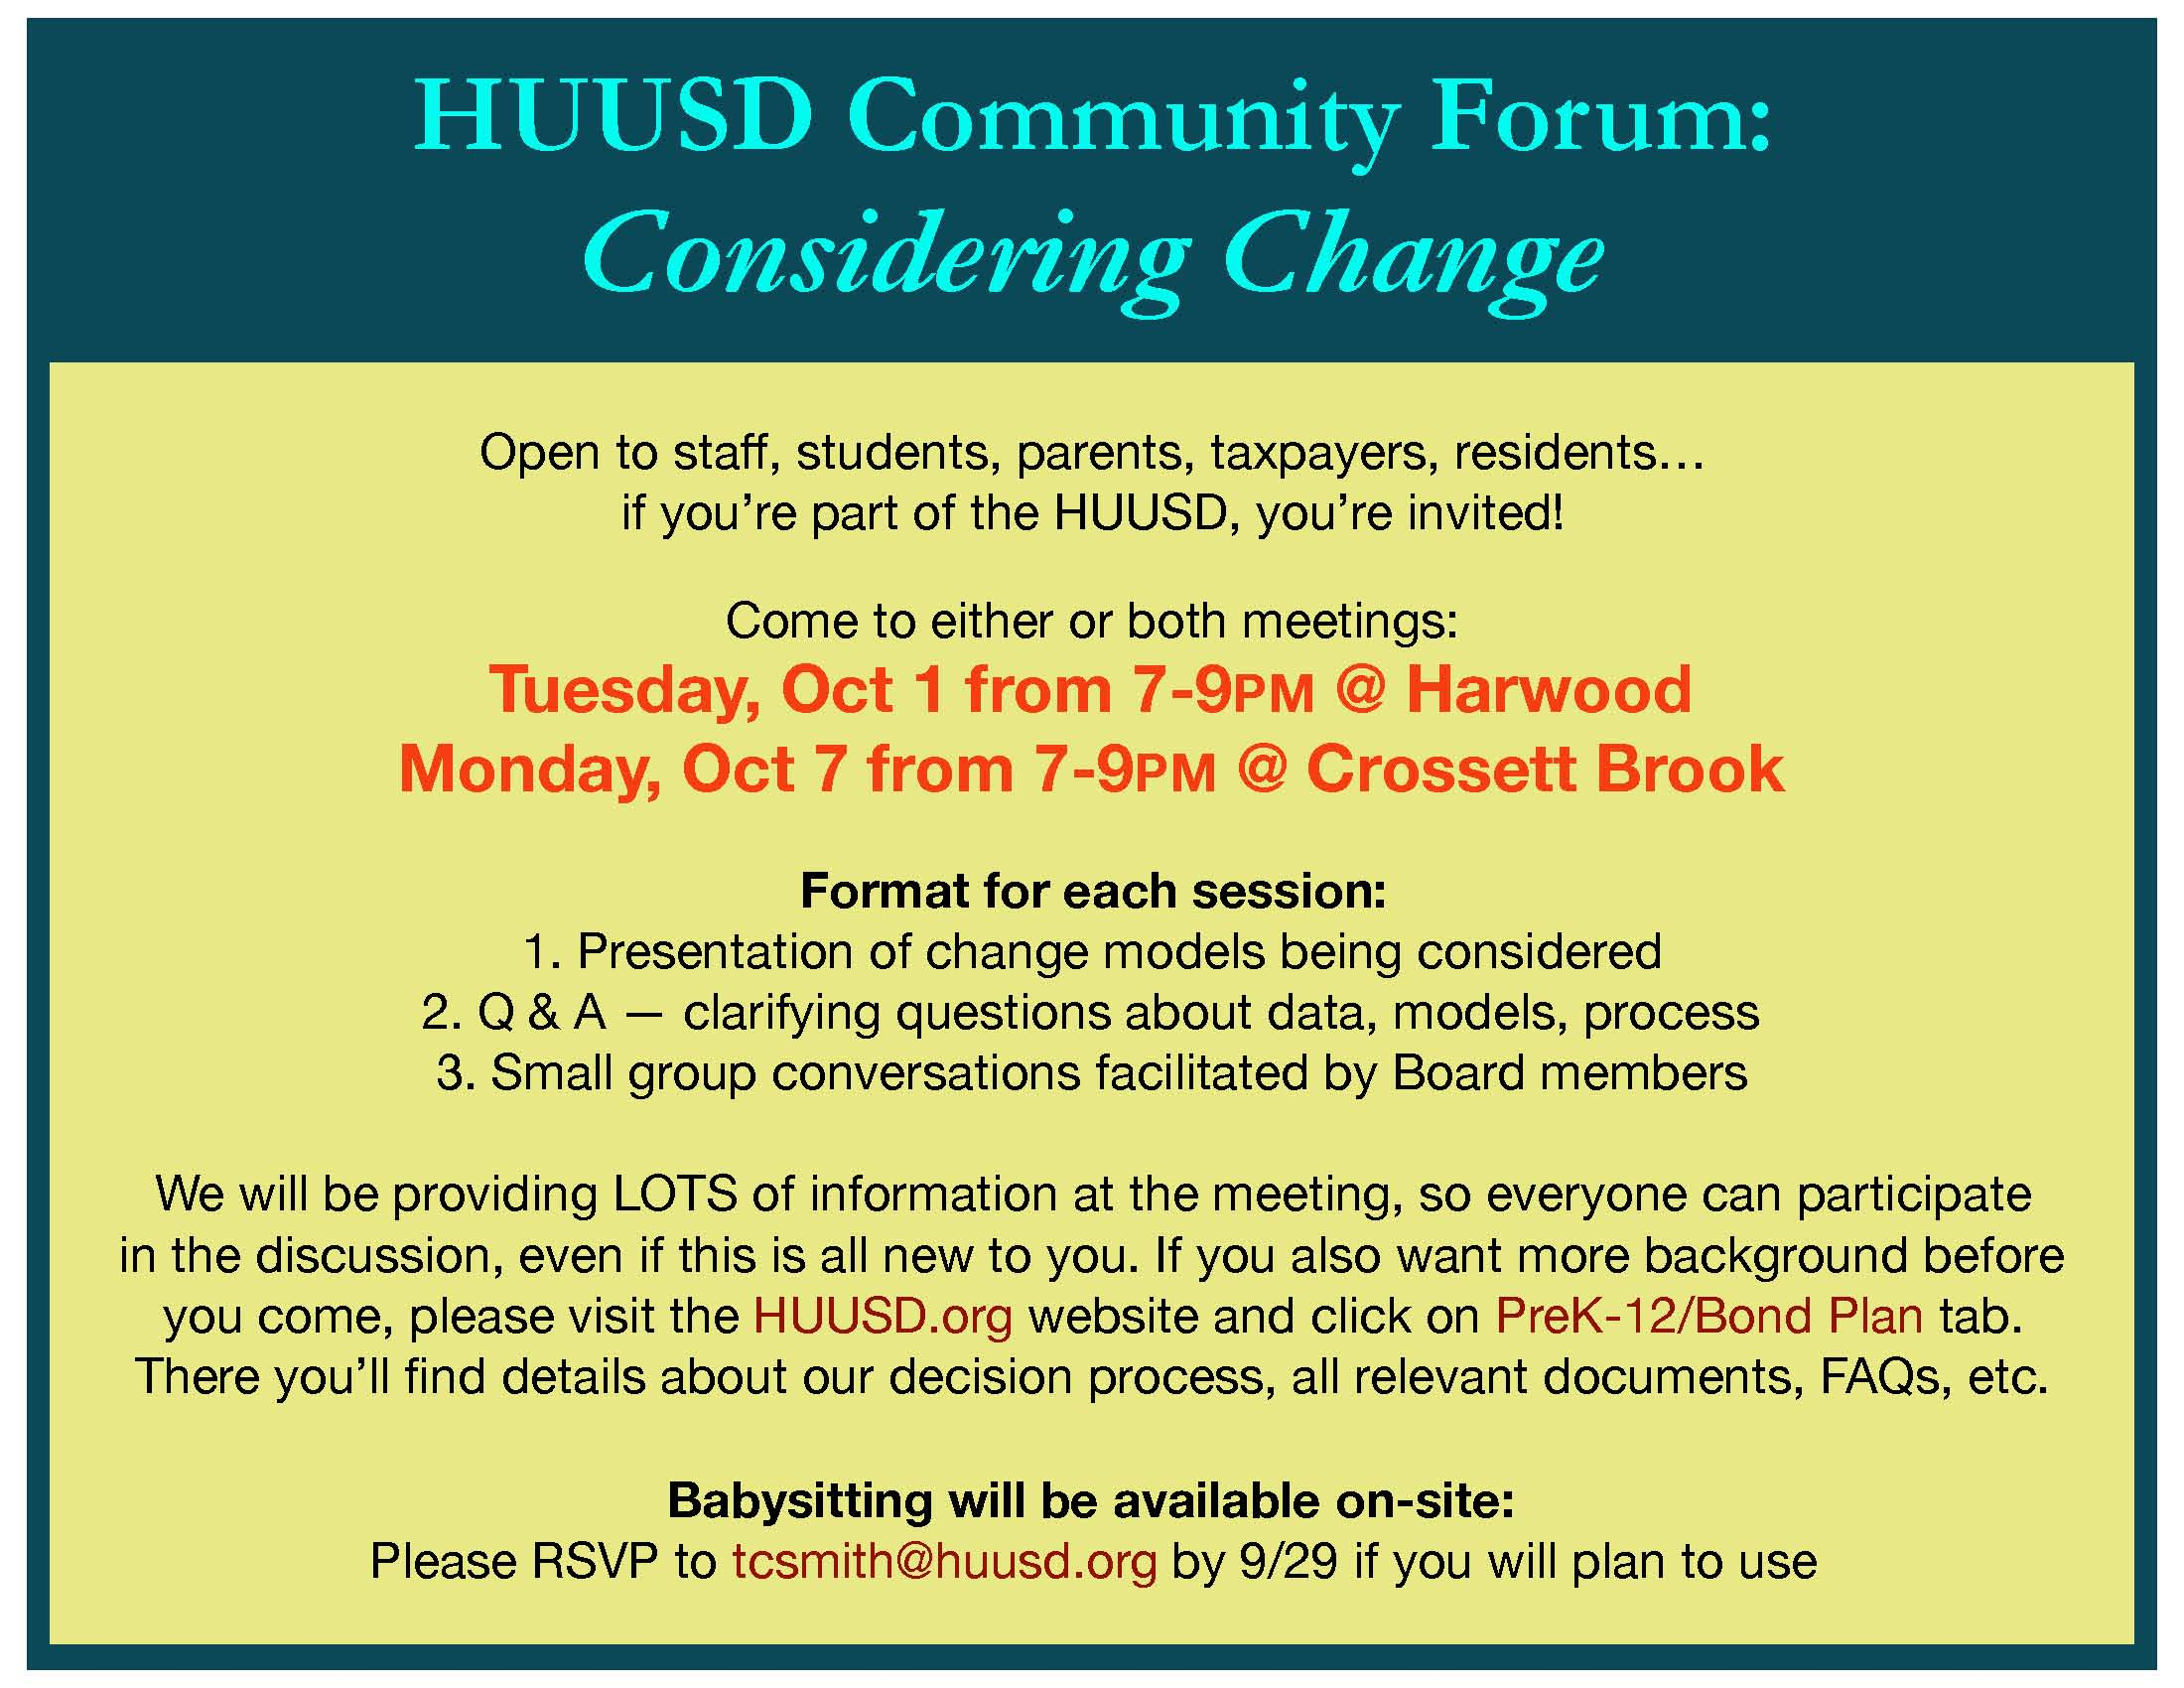 HUUSD Community Forums October 1 and October 7 - Featured Image